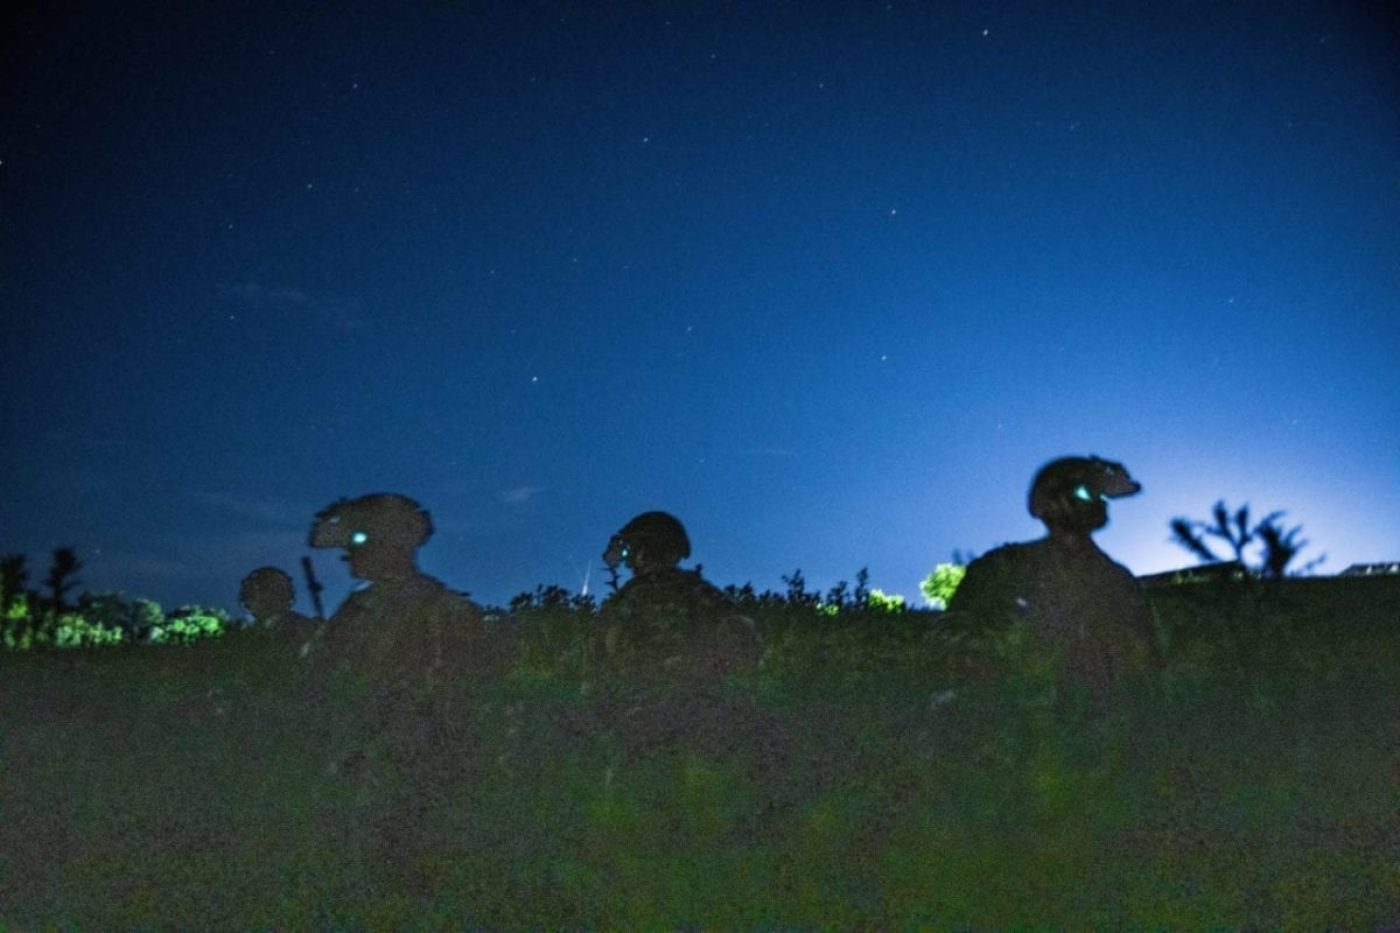 U.S. Army Special Forces assigned to 19th Special Forces Group (Airborne) prepare to assault an objective near Cincu, Romania June 19, 2019 as part of Trojan Footprint 19. Trojan Footprint is an annual U.S. Special Operations Command Europe-led exercise that incorporates Allied and partner special operations forces, this year's exercise brought together 1400 SOF from ten nations for training over land, sea and air across Bulgaria, Hungary, Romania and the Black Sea. (U.S. Army photo by Spc. Patrik Orcutt).